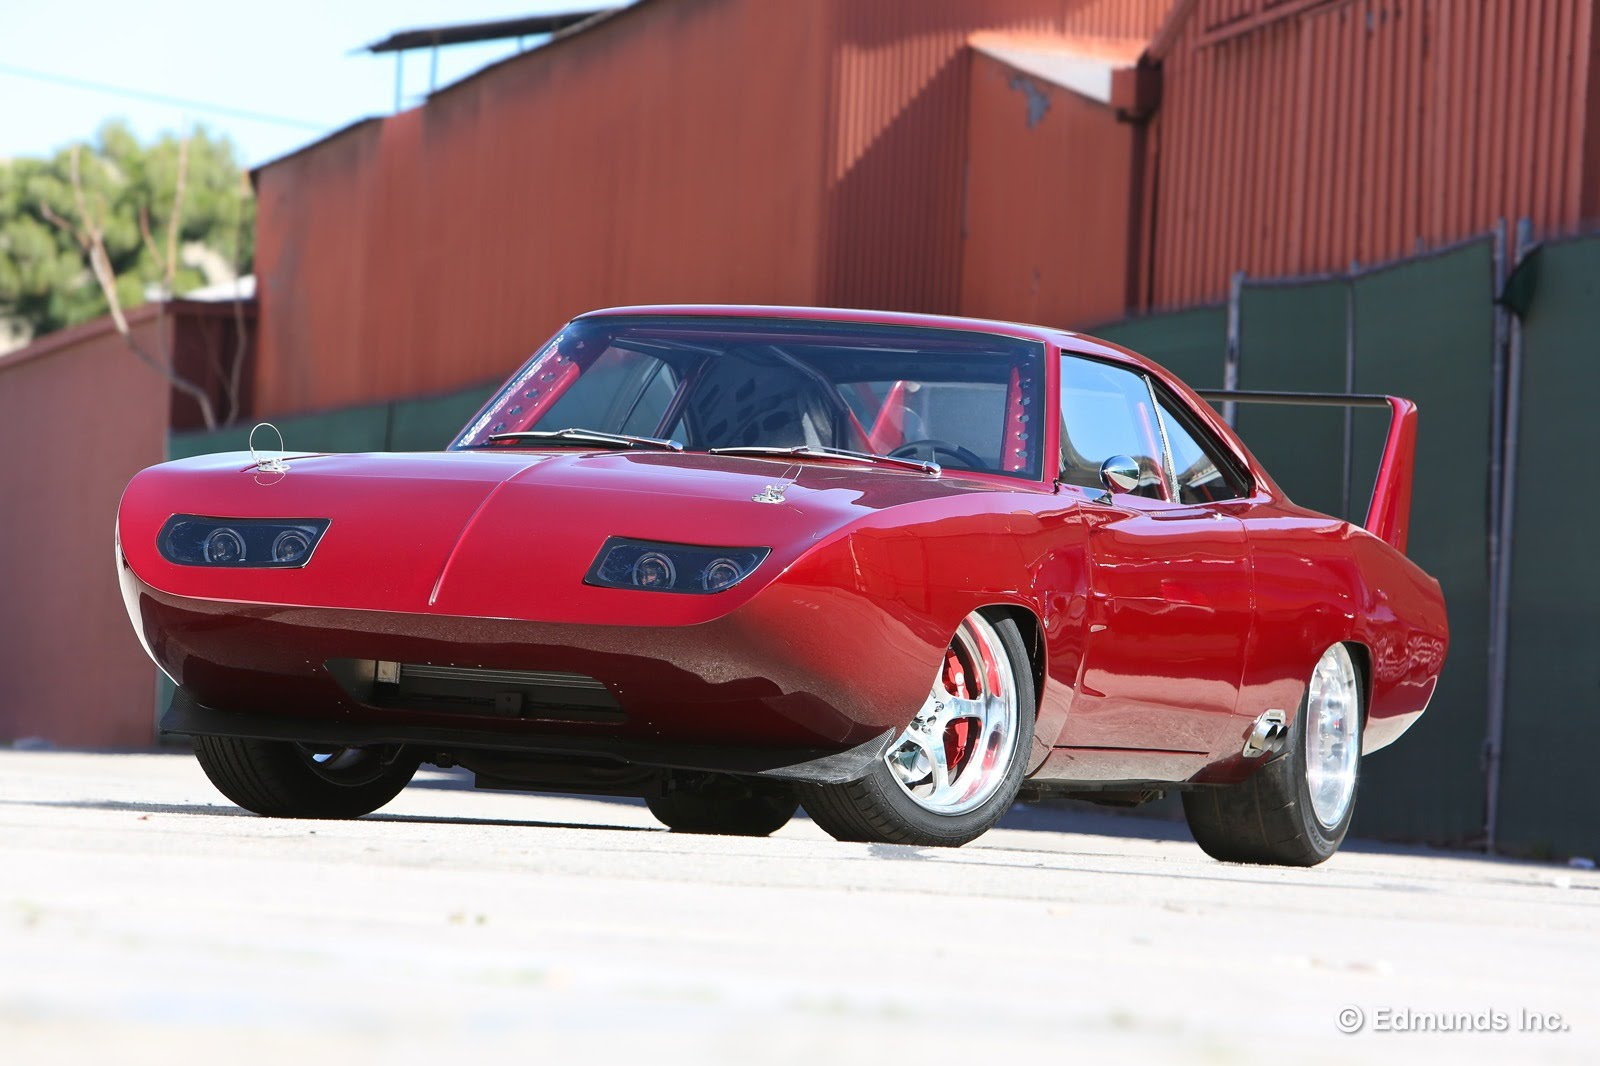 1968 Charger For Sale >> Dodge Charger Daytona | The Fast and the Furious Wiki | FANDOM powered by Wikia